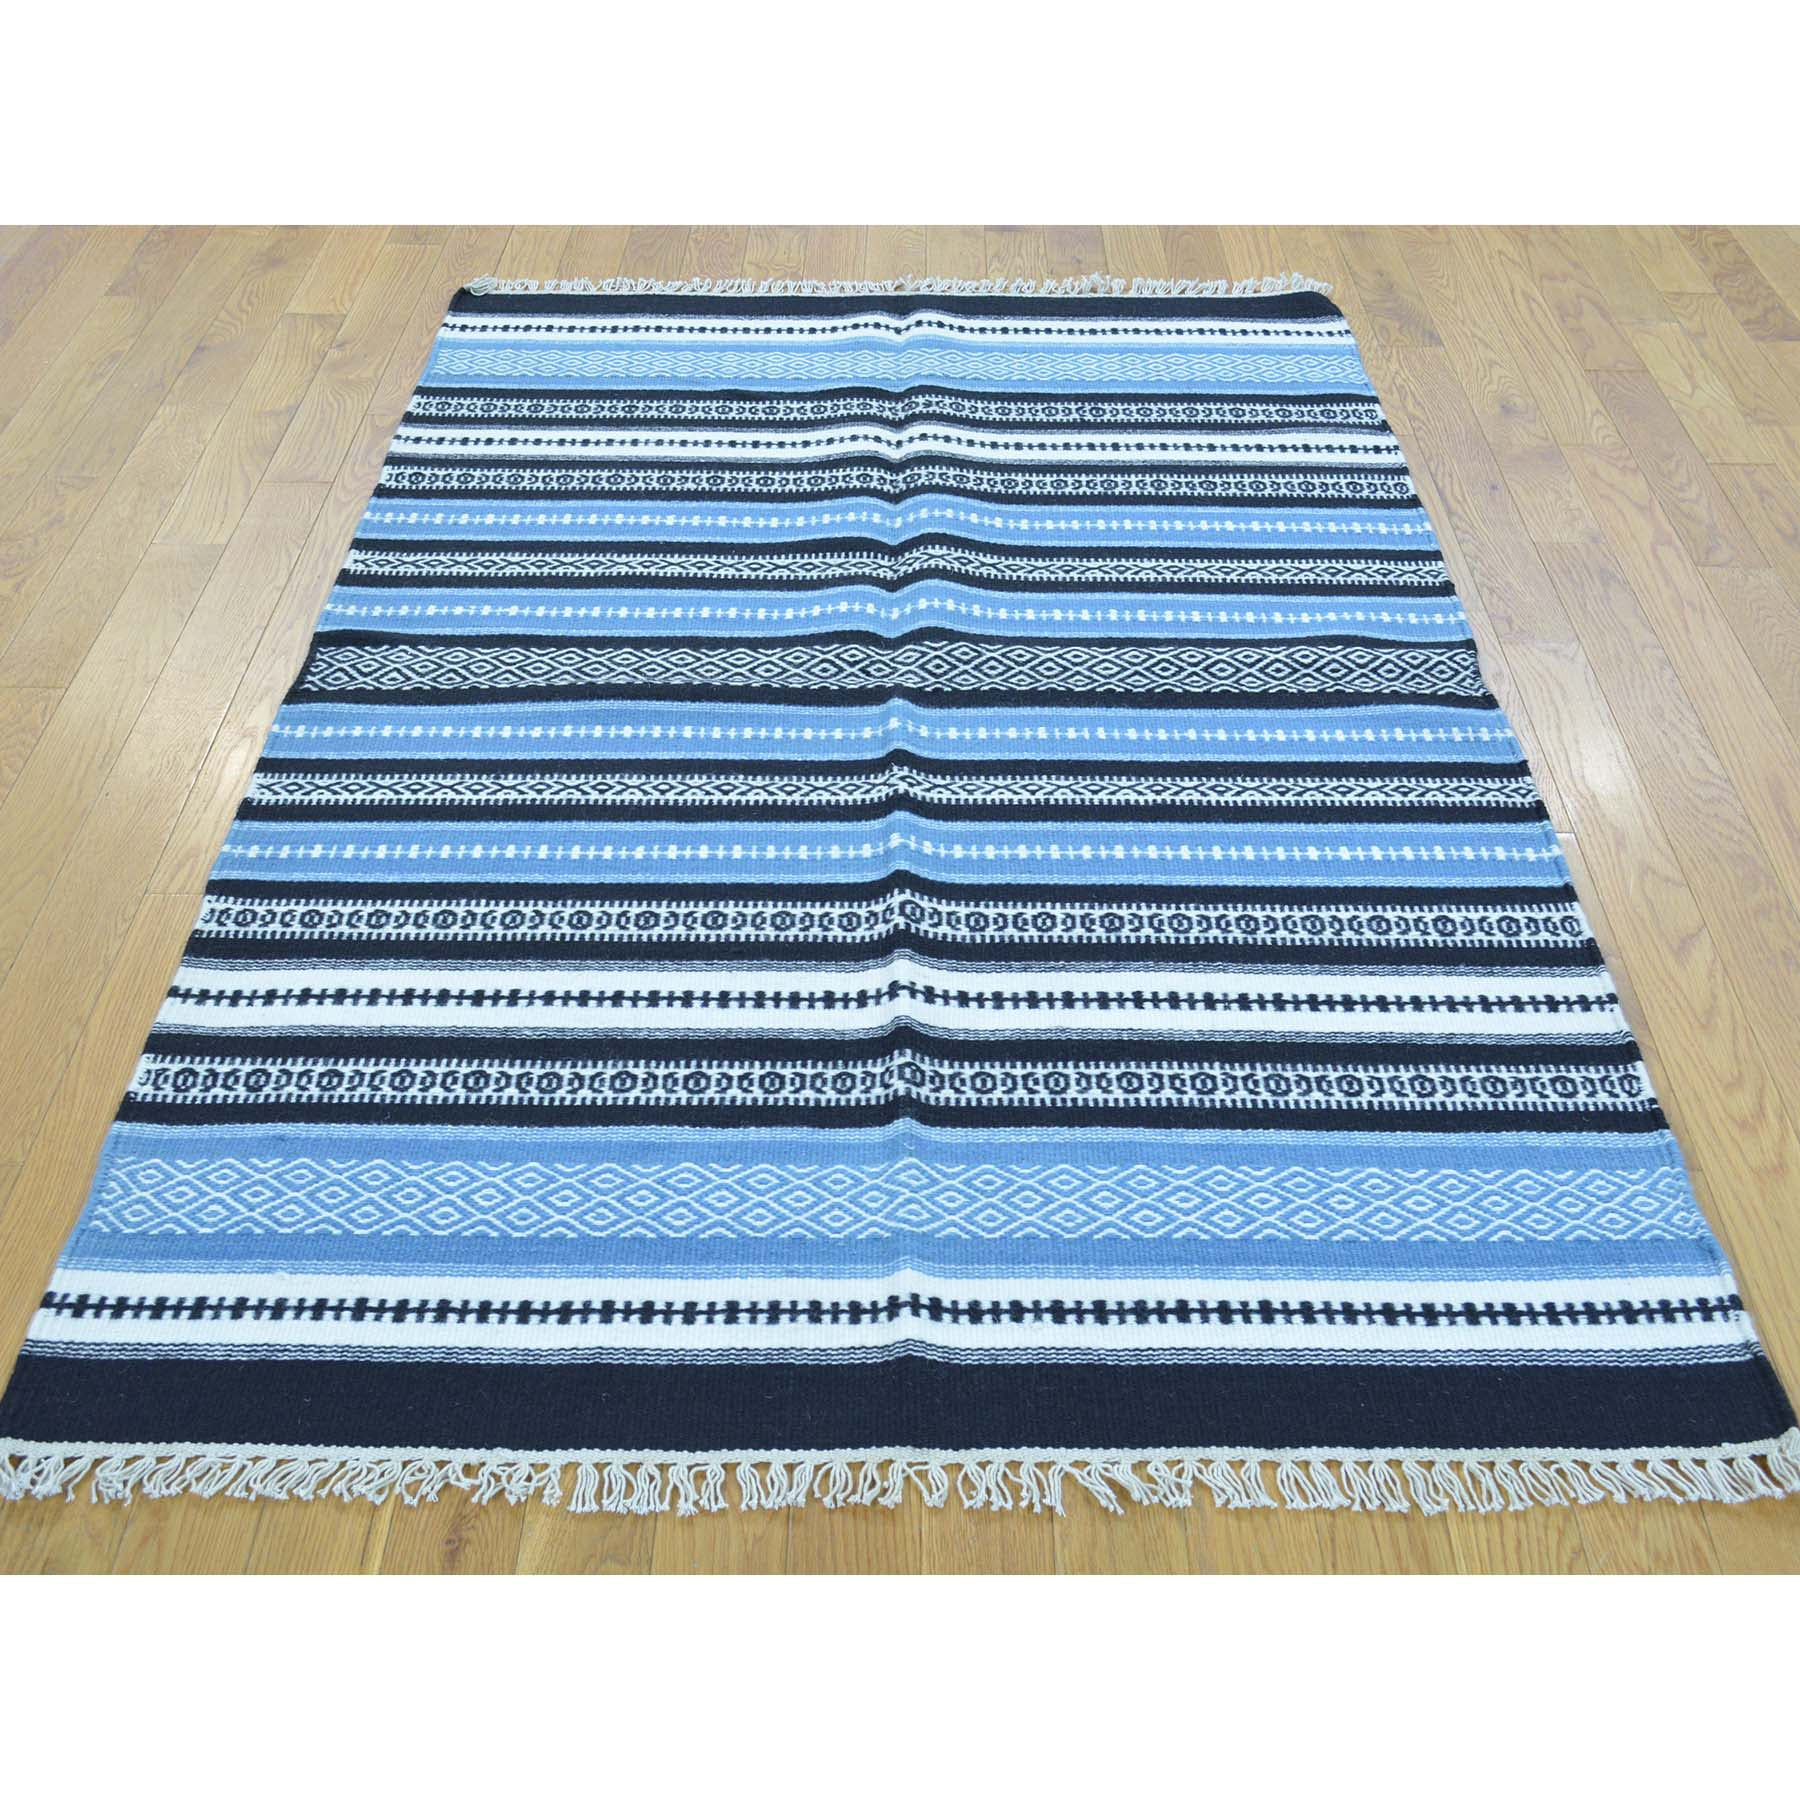 "Handmade Flat Weave Rectangle Rug > Design# SH30072 > Size: 3'-10"" x 6'-0"" [ONLINE ONLY]"